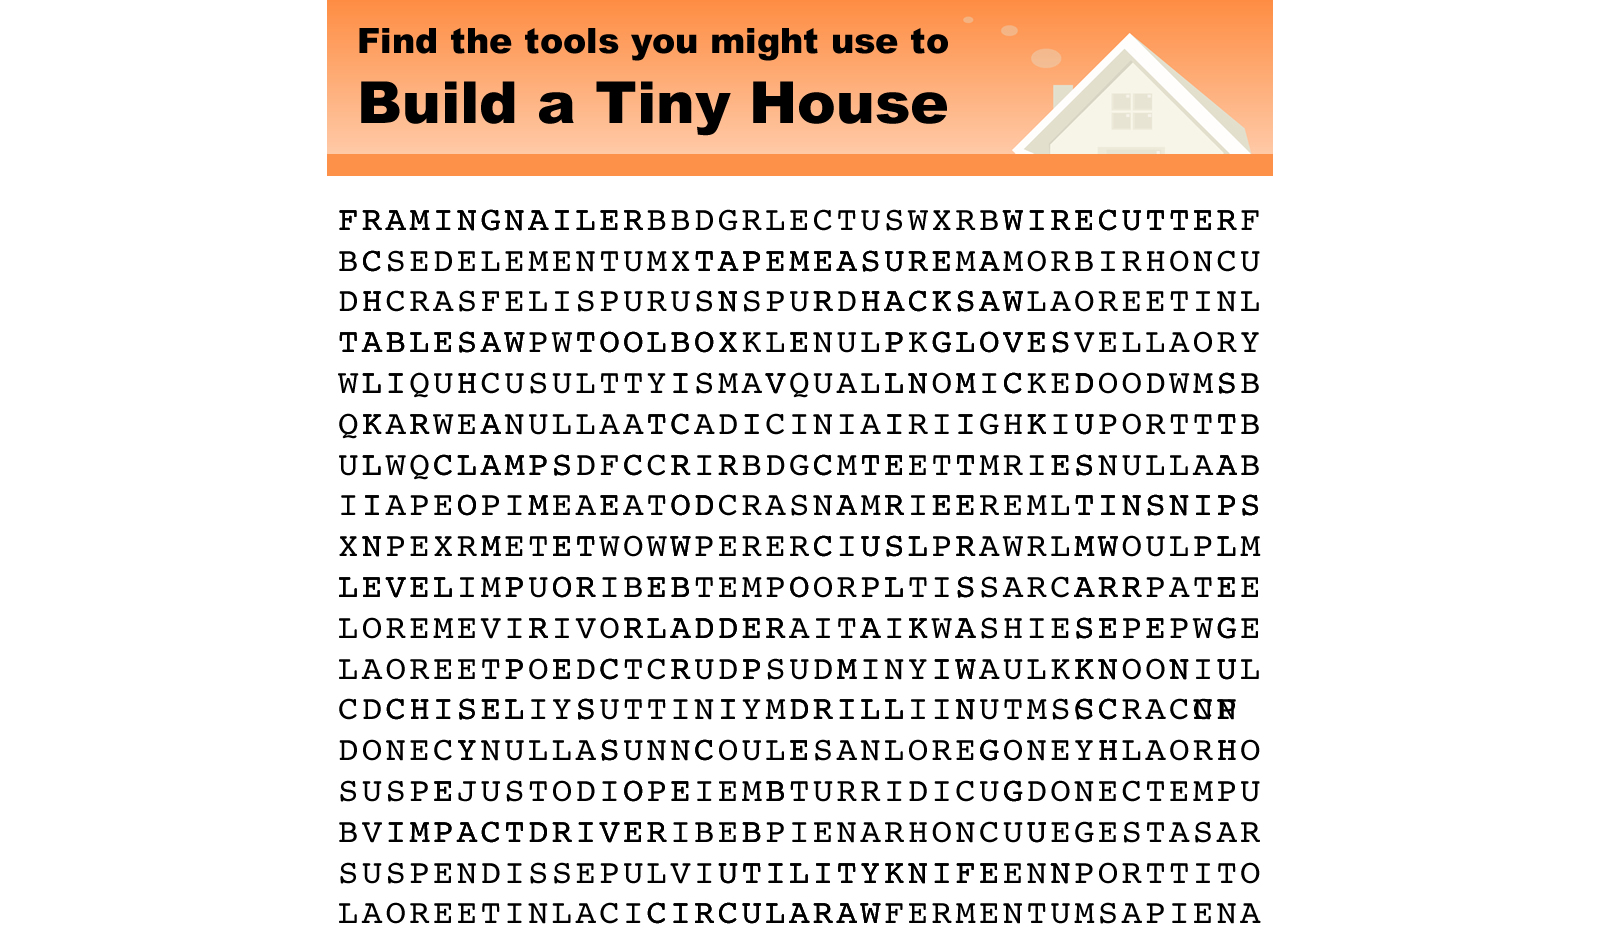 Tools You Might Use to Build a Tiny House